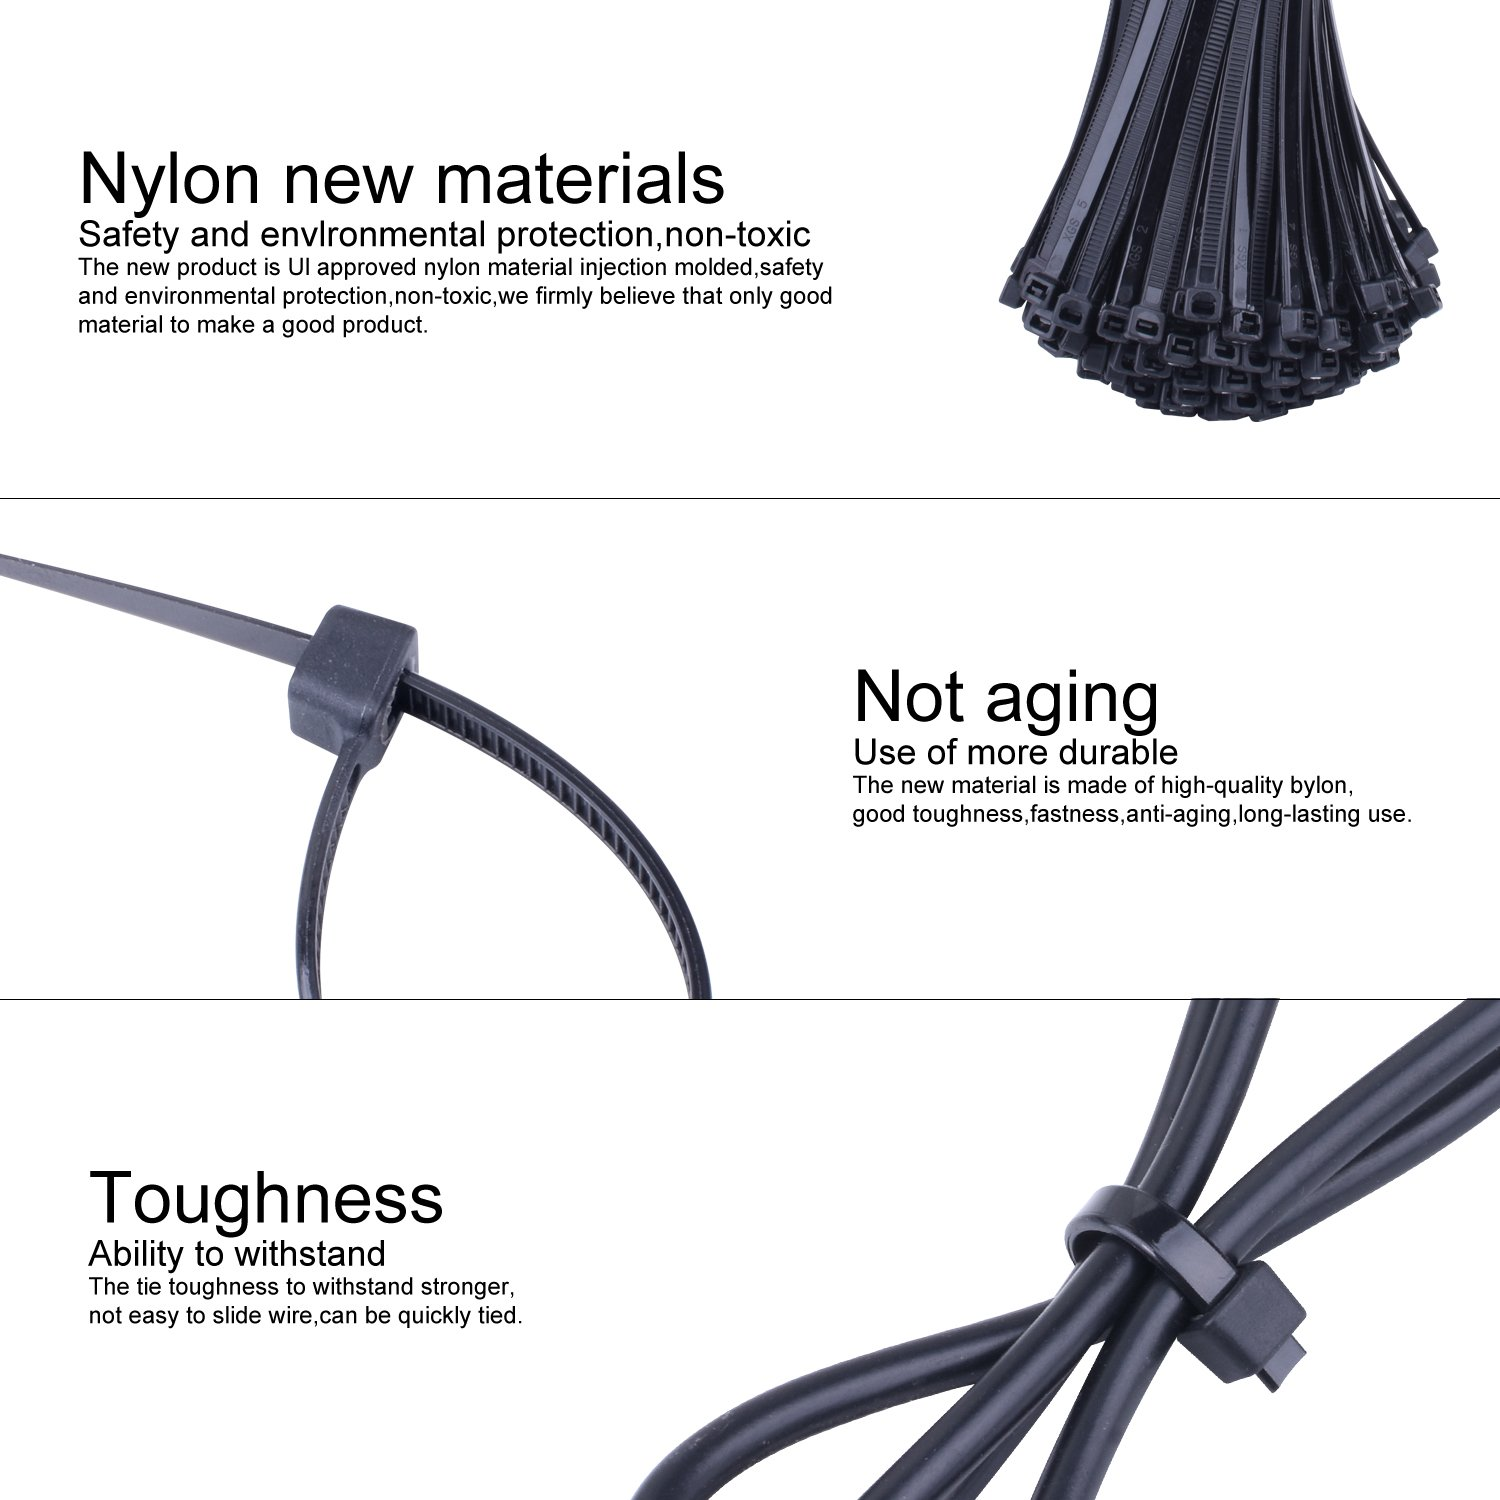 NOUVCOO 250pcs Self-locking Zip Ties Black 10 inches & 100pcs Self-adhesive Cable Tie Mounts Black 0.9x0.9 inch with Screw Holes for Home Office Garden Garage and Workshop NV03 by NOUVCOO (Image #4)